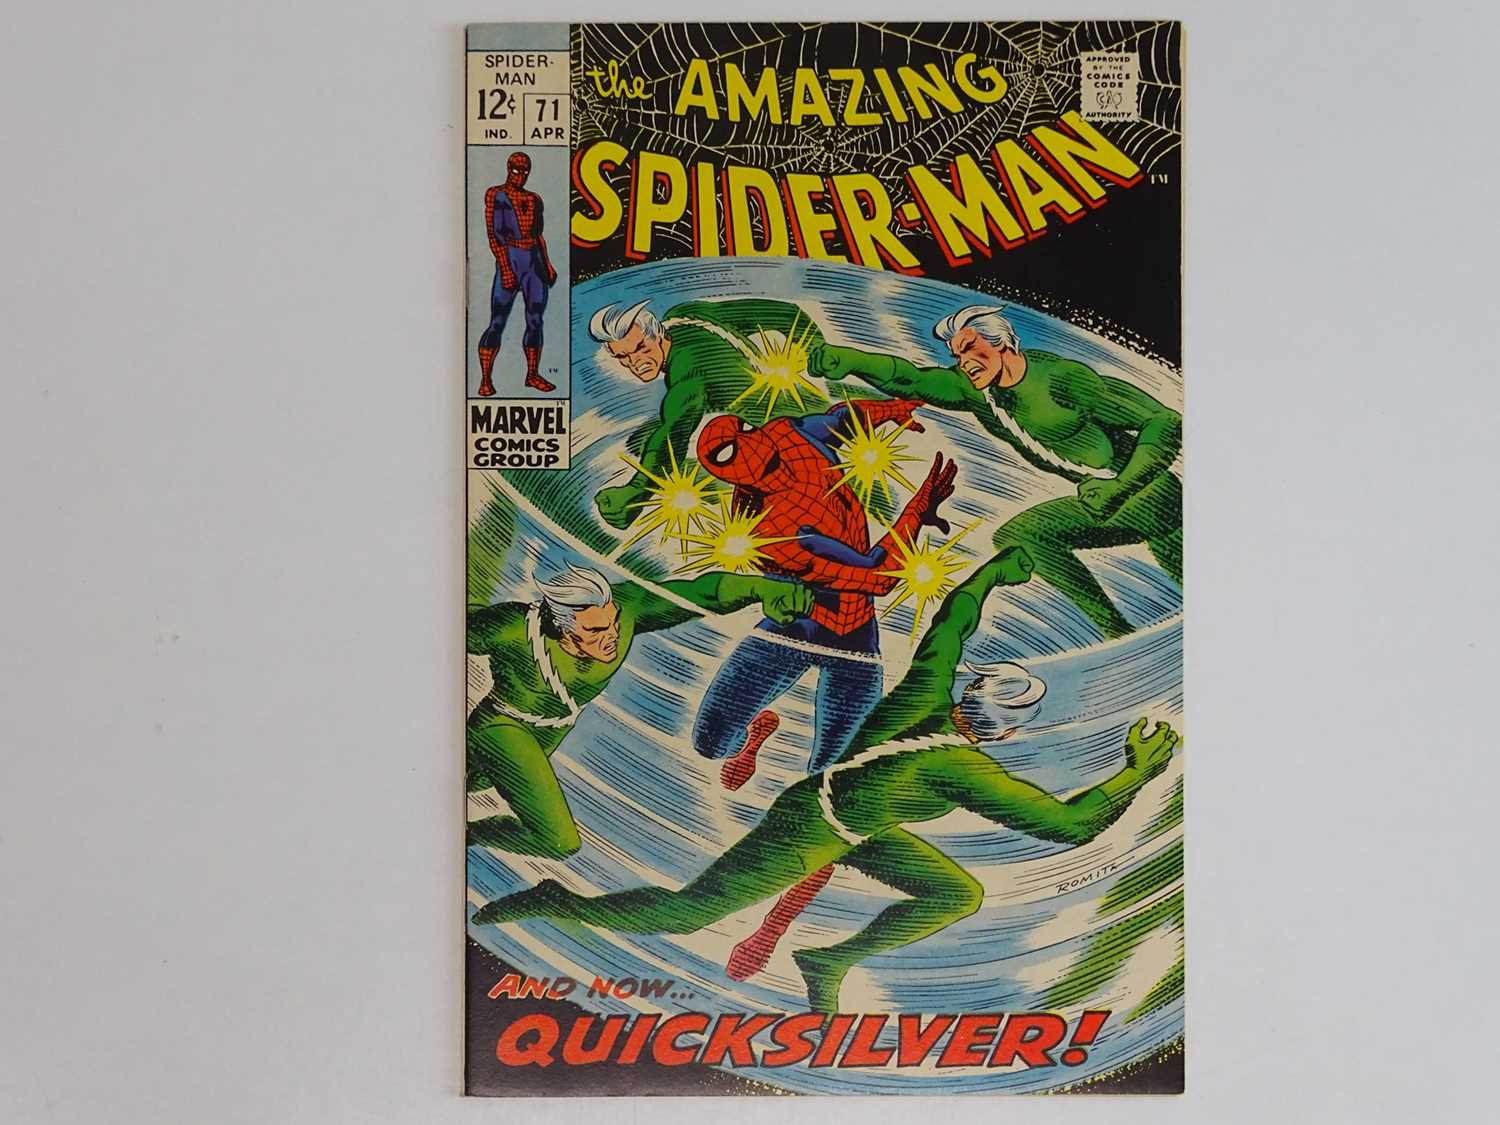 AMAZING SPIDER-MAN #71 - (1969 - MARVEL) - Quicksilver, Scarlet Witch, Toad appearances - John